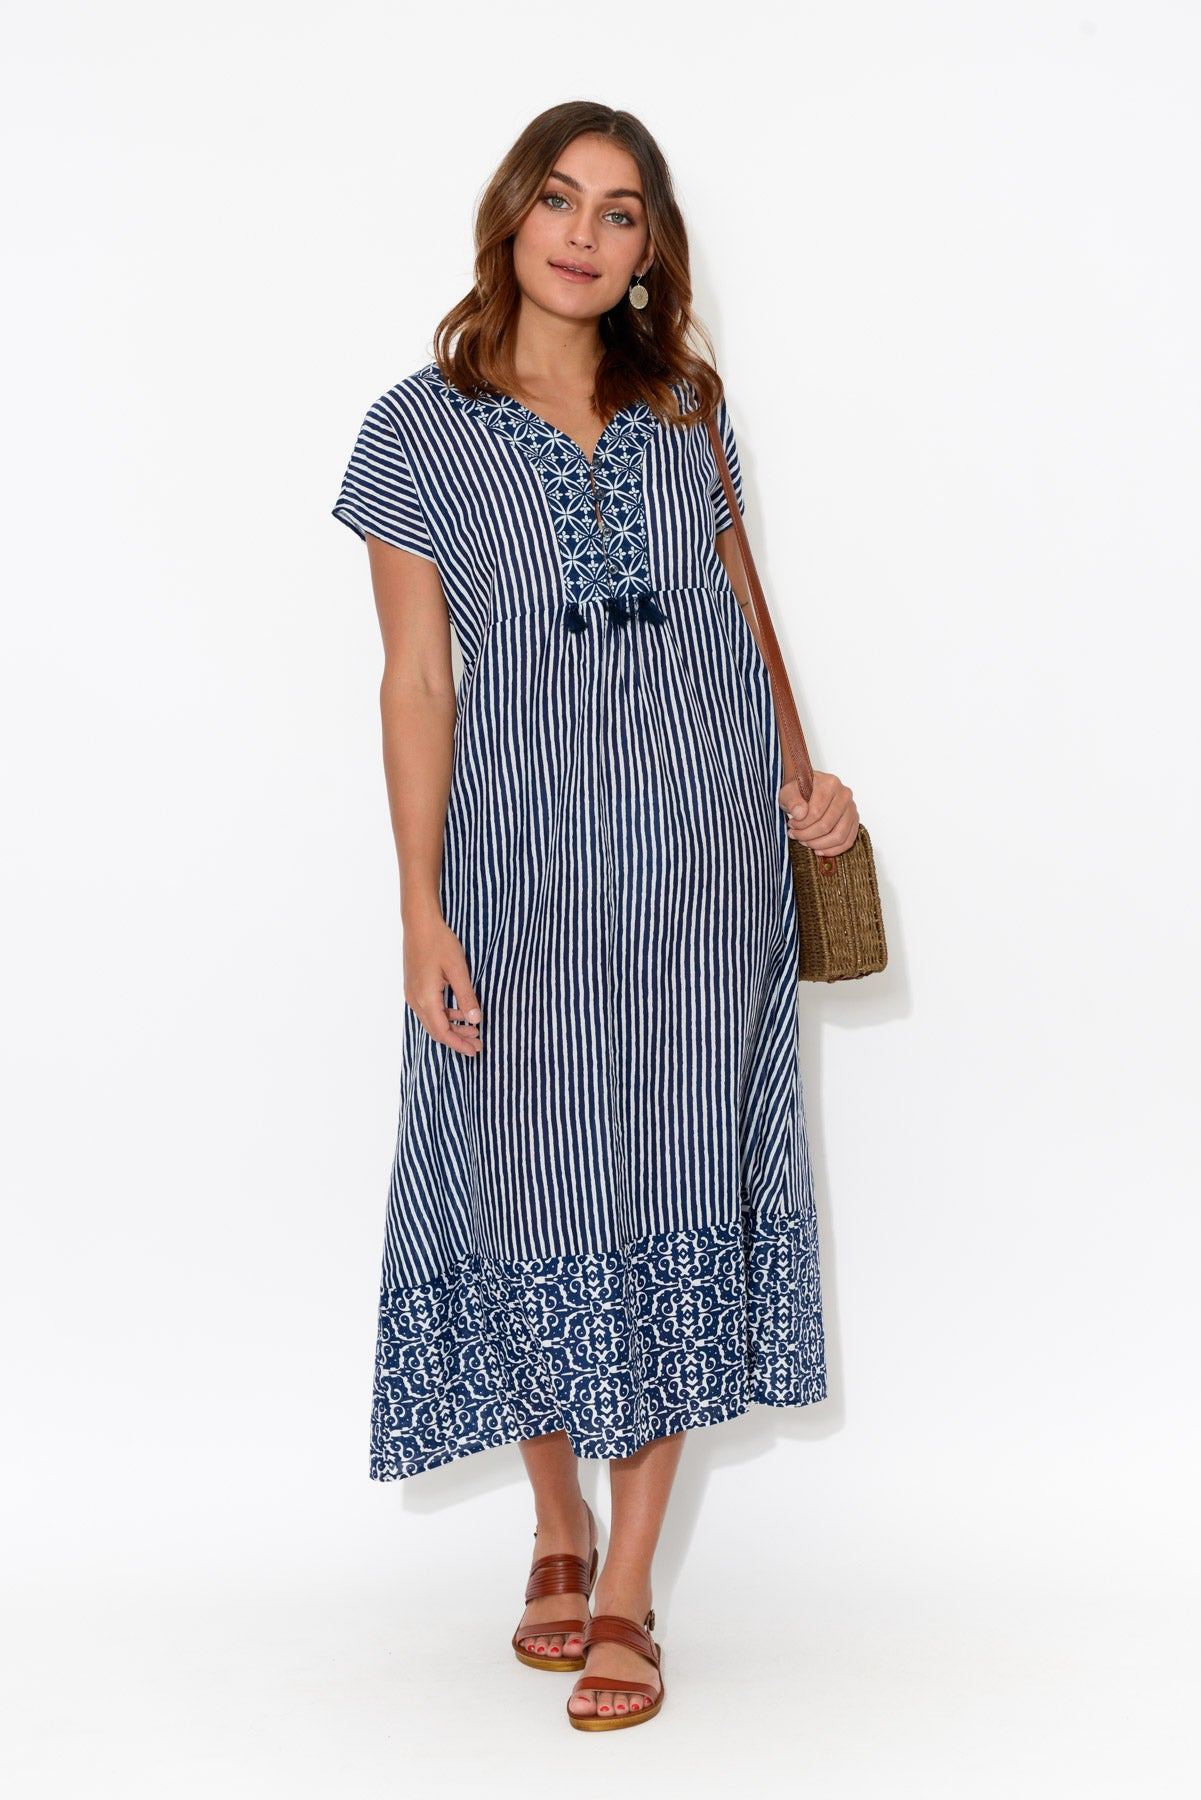 Evie Navy Cotton Midi Dress - Blue Bungalow